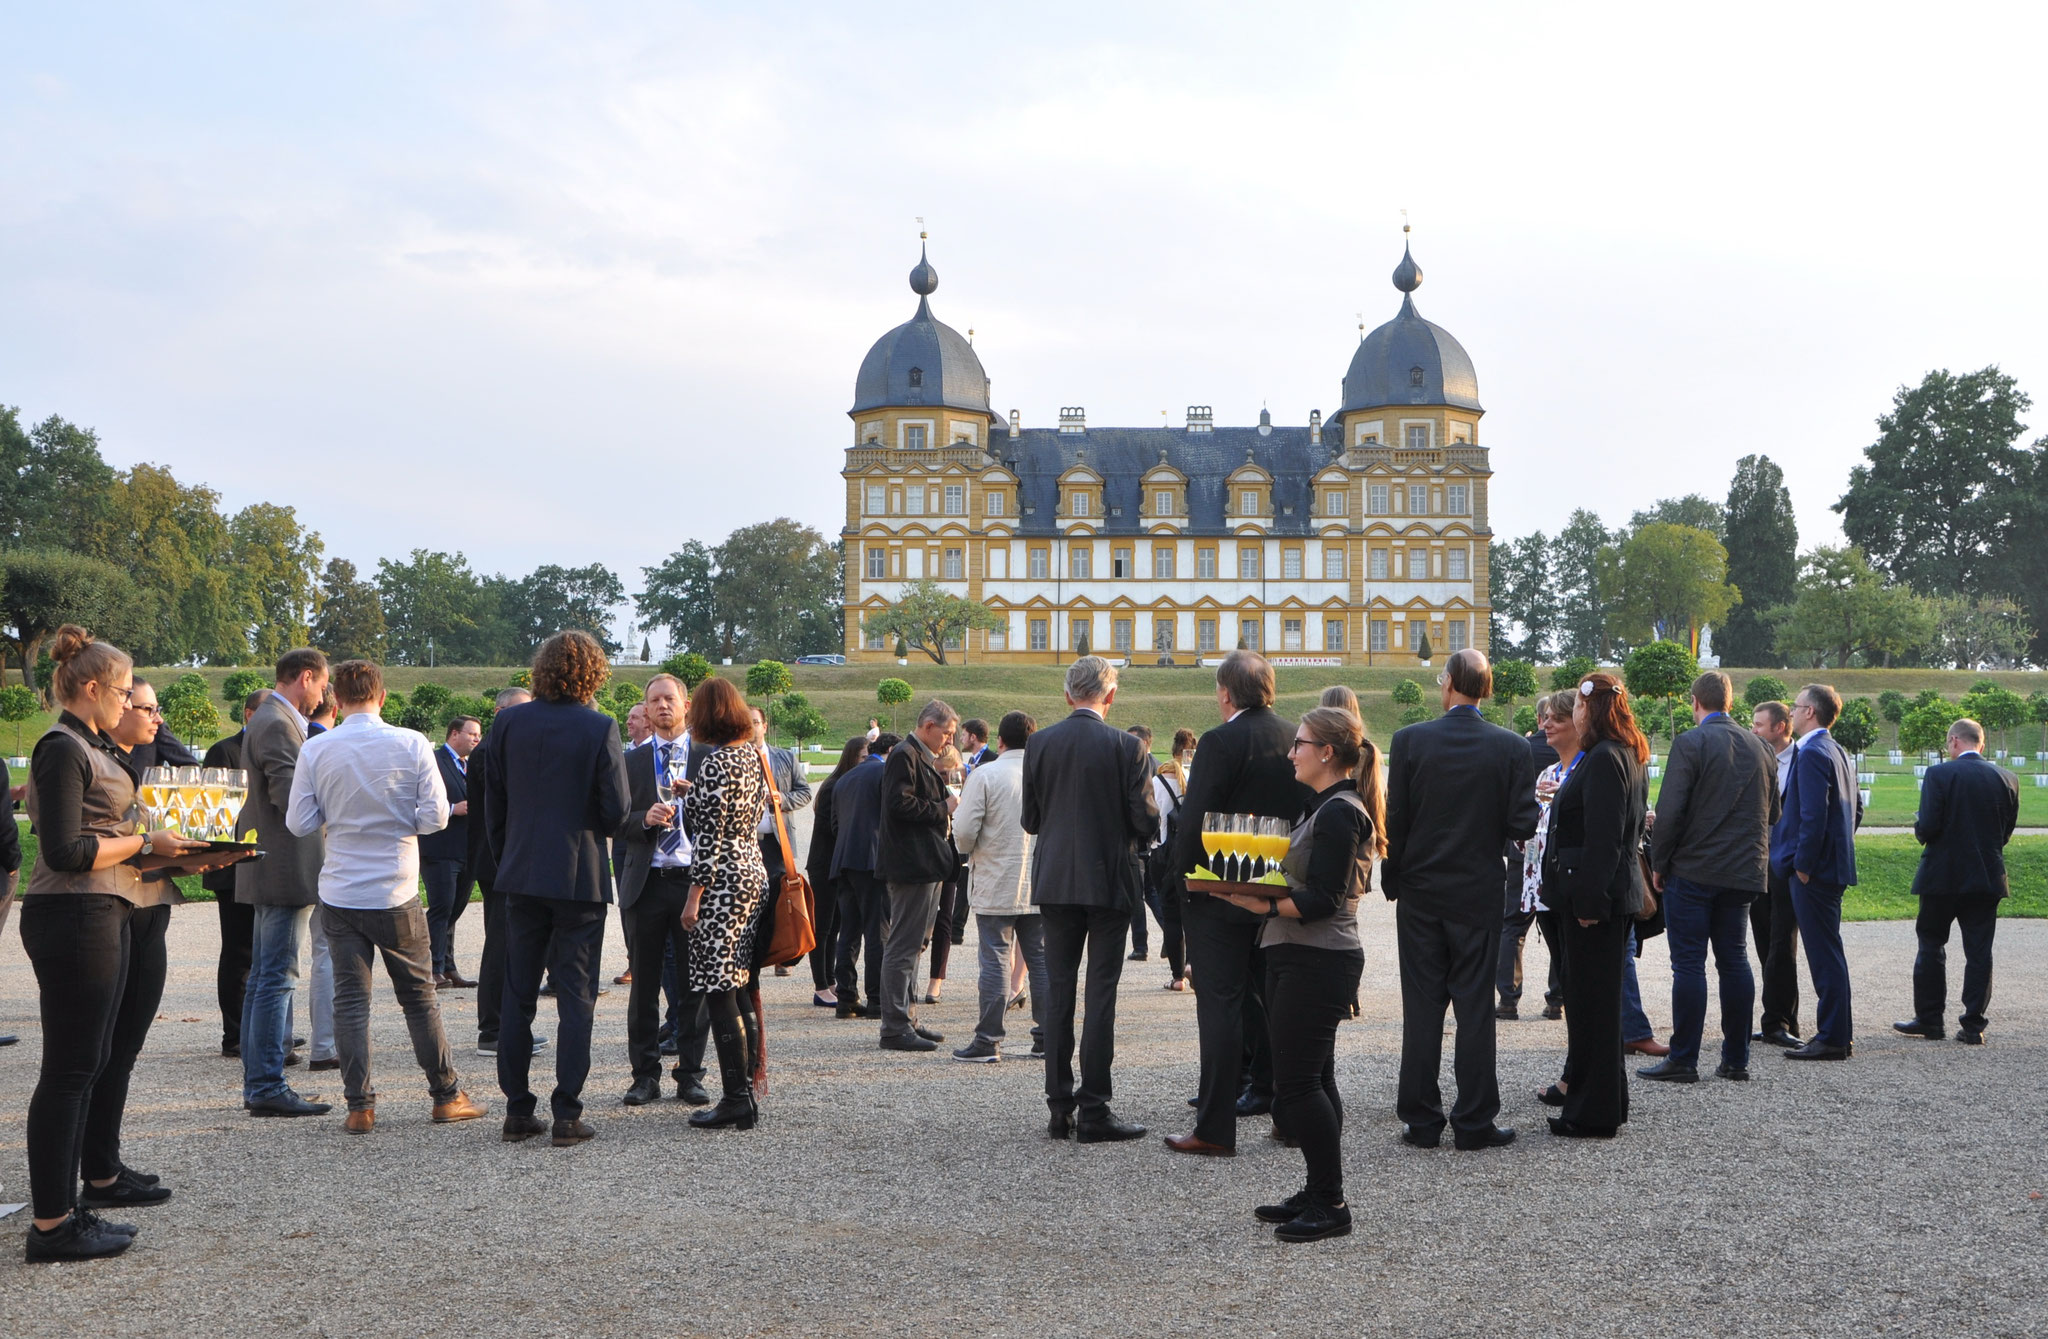 The conference dinner of LANE 2018 took place in the orangerie of Schloss Seehof near Bamberg. Here you can see LANE participants in front of Seehof castle